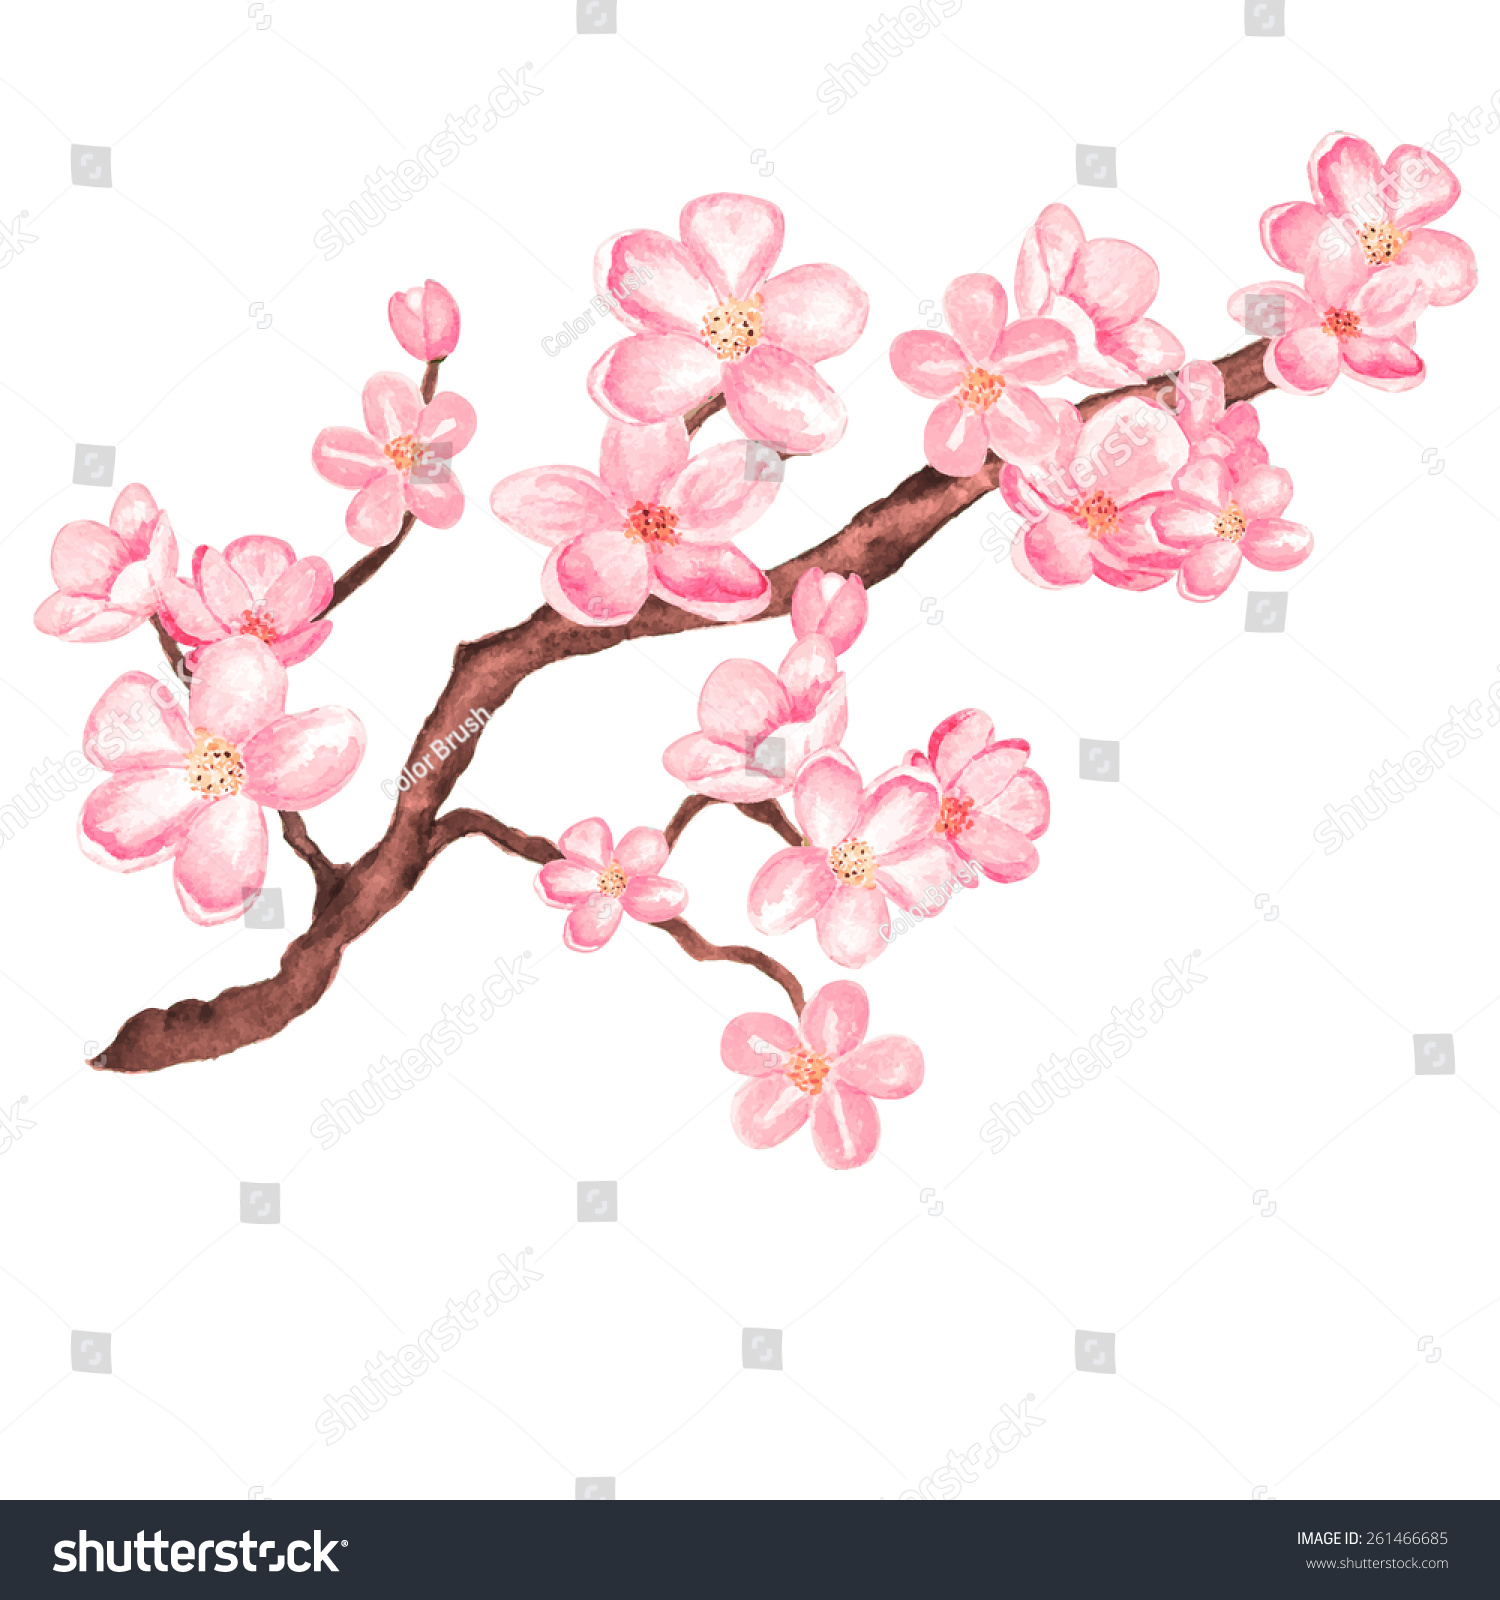 Butterfly And Flower Wall Stickers Watercolor Branch Blossom Sakura Cherry Tree Stock Vector